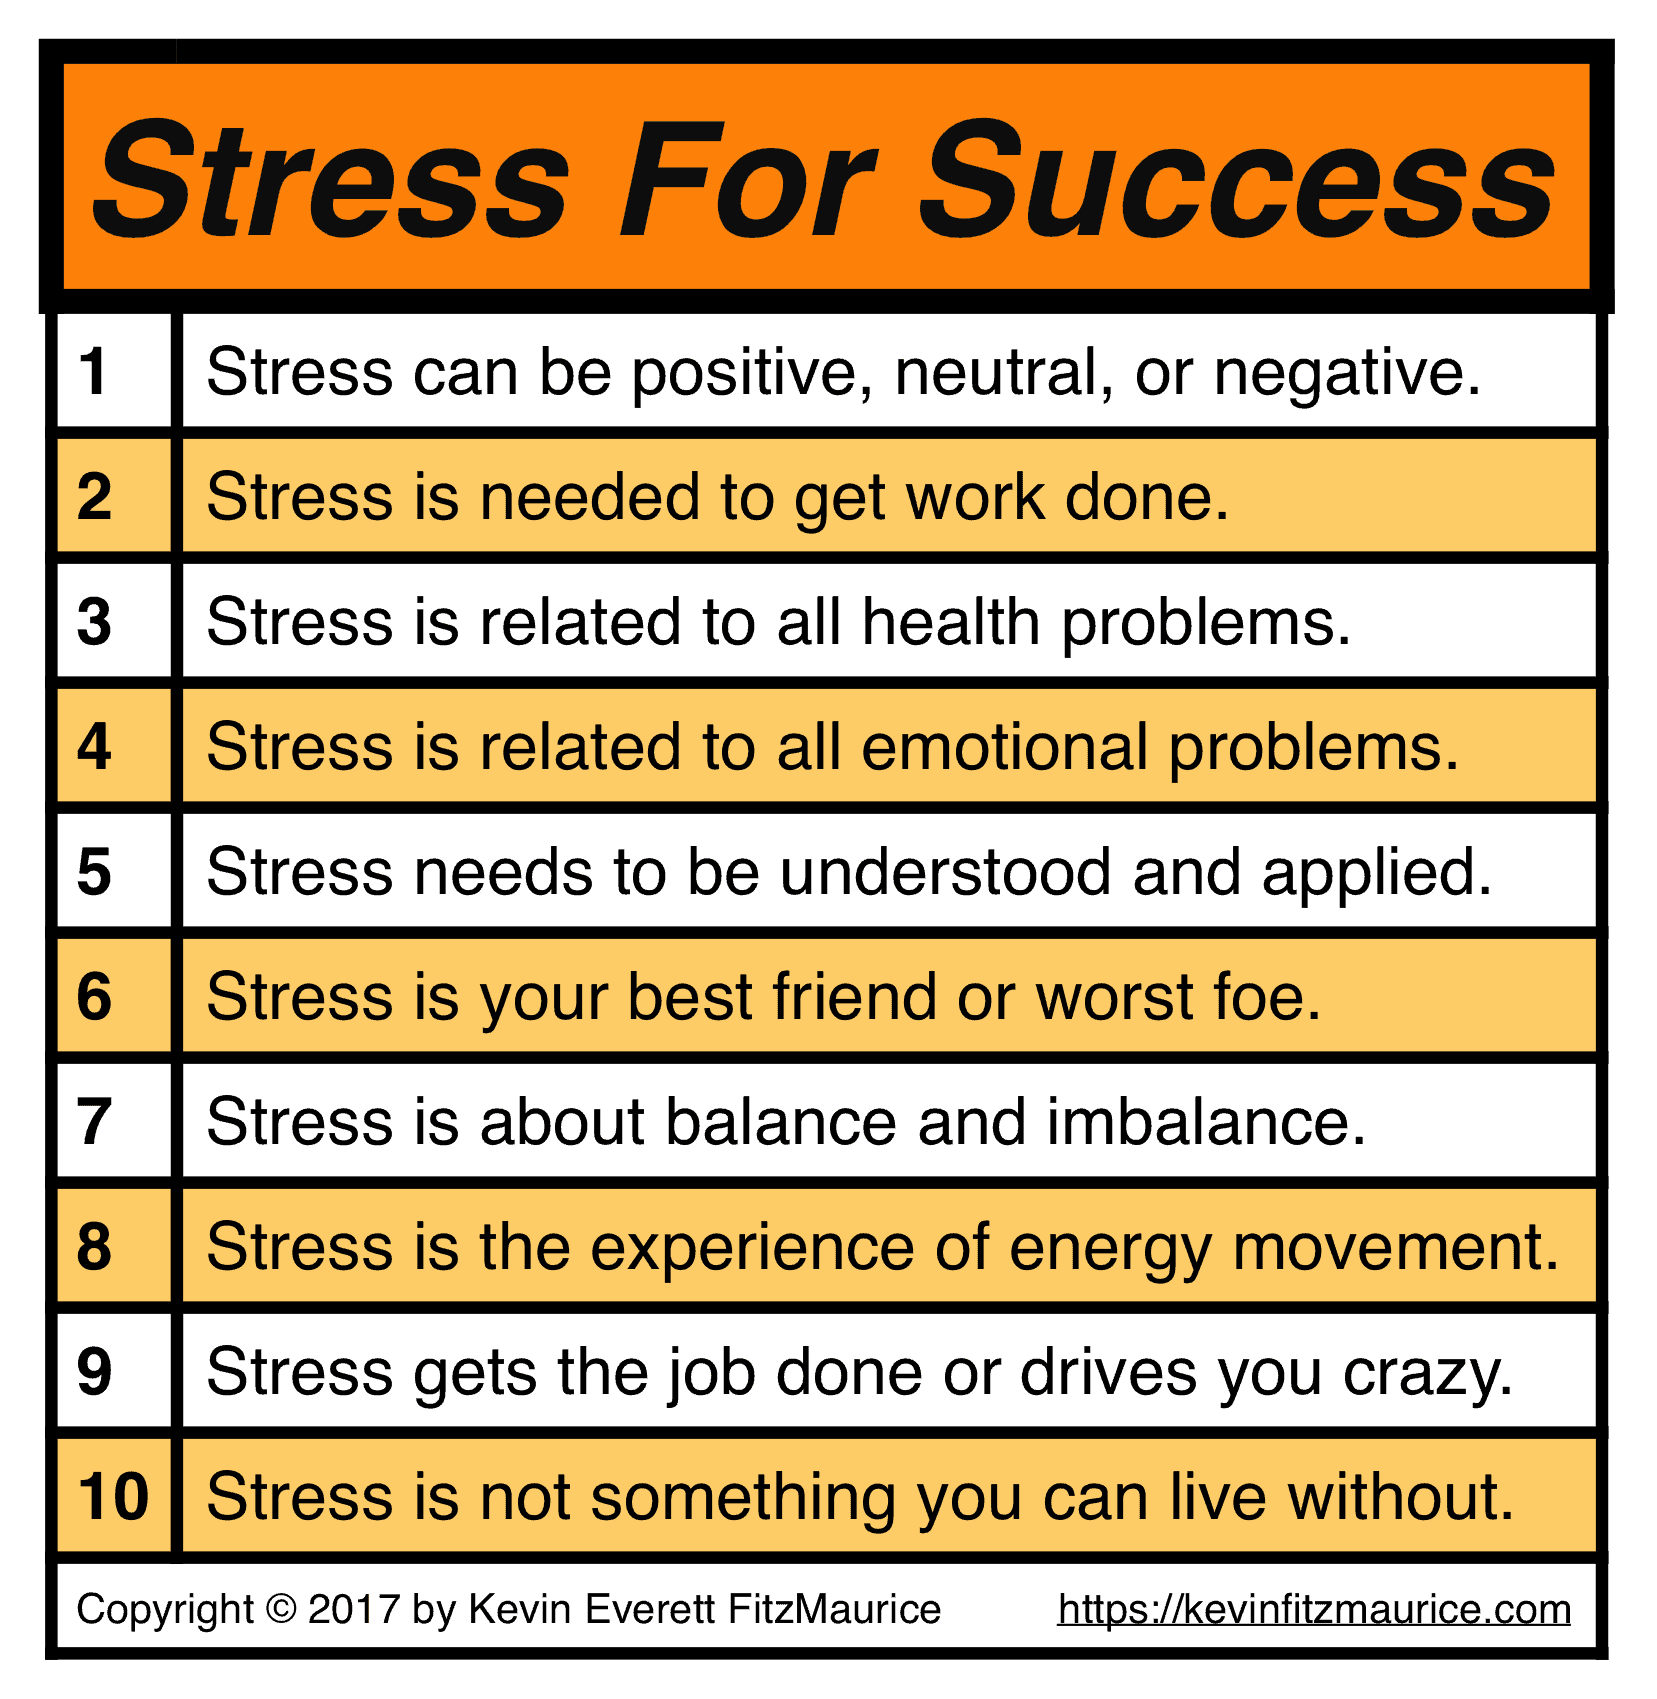 Stress for Success table of ideas